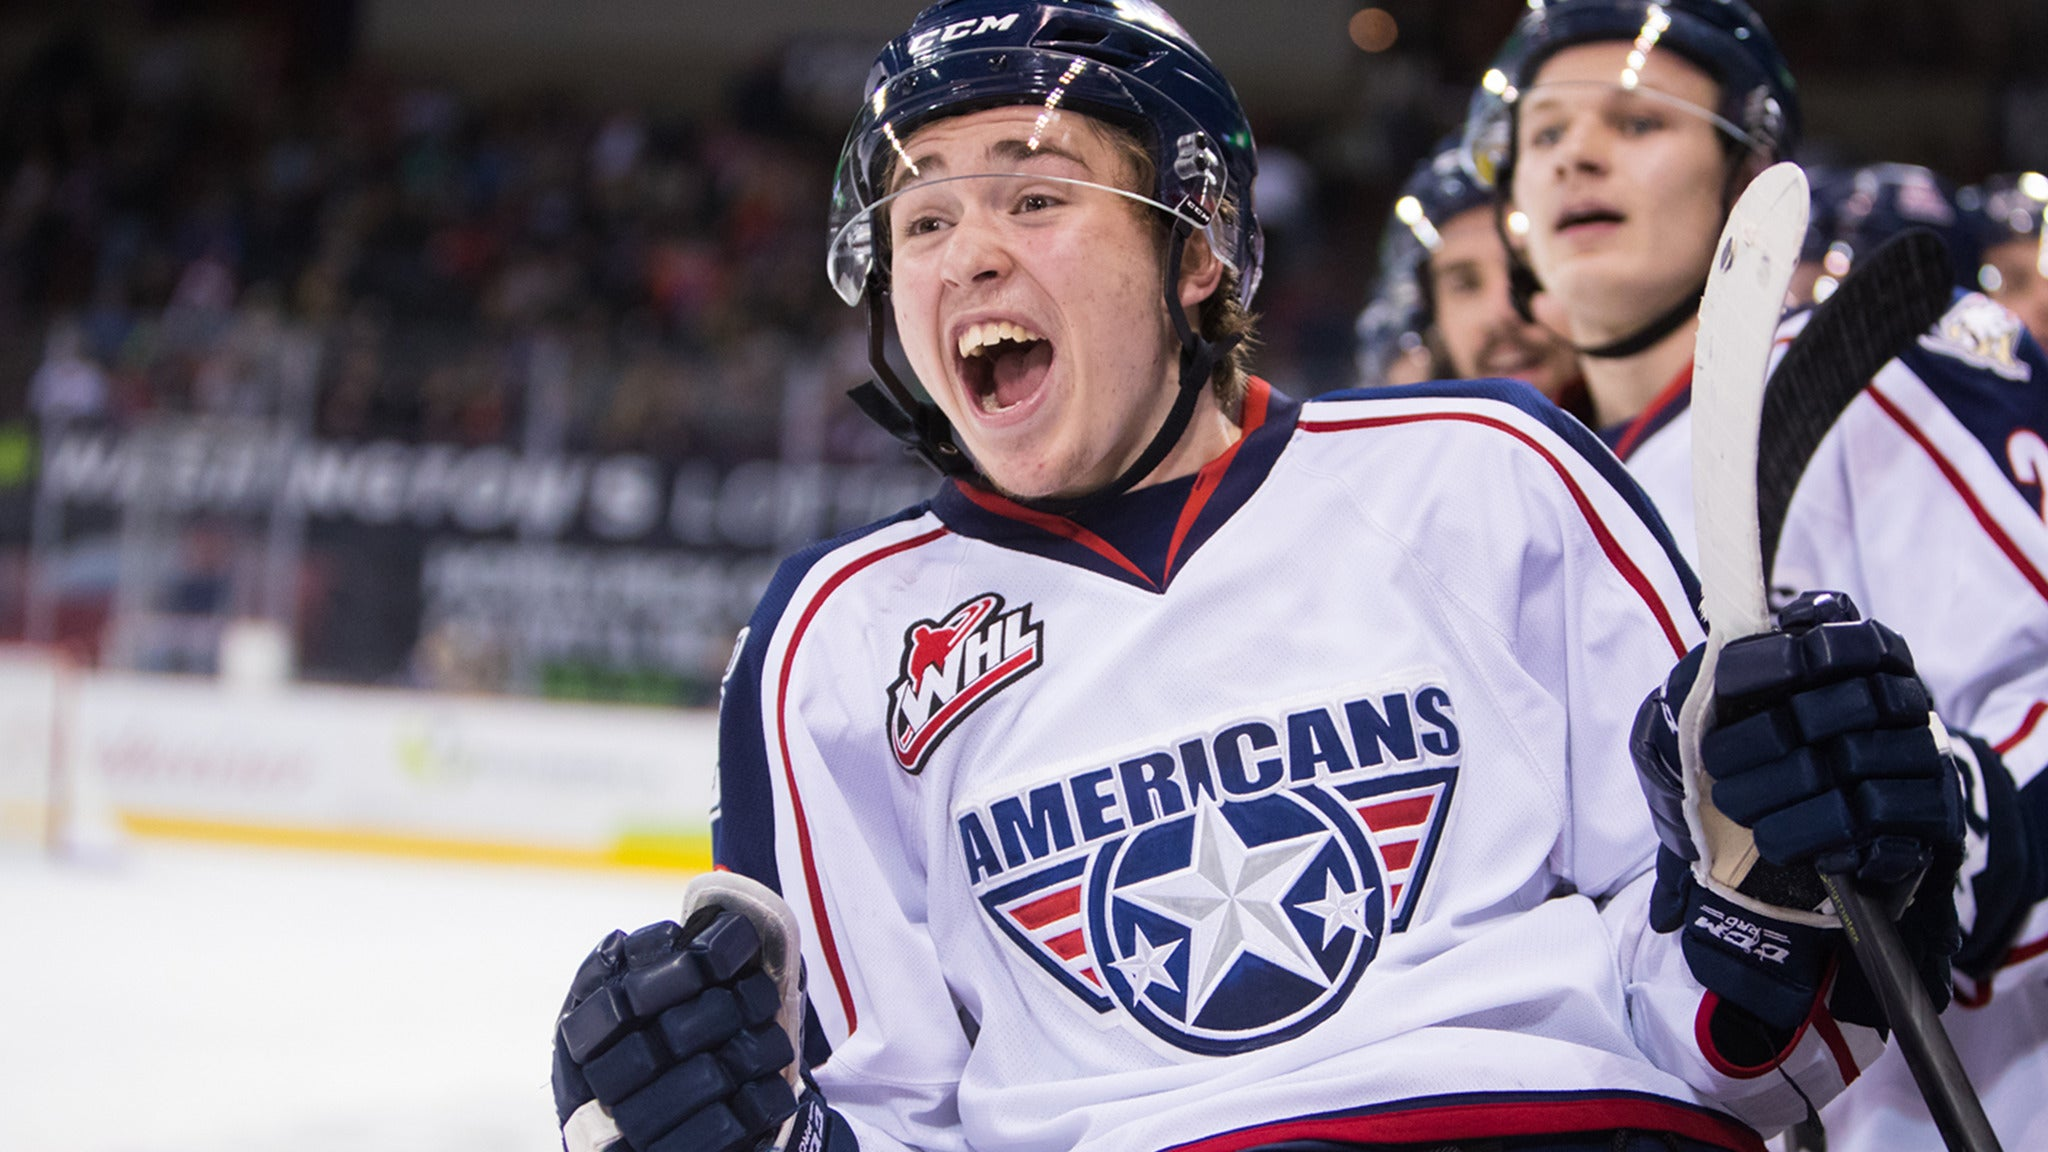 Tri-City Americans vs. Seattle Thunderbirds